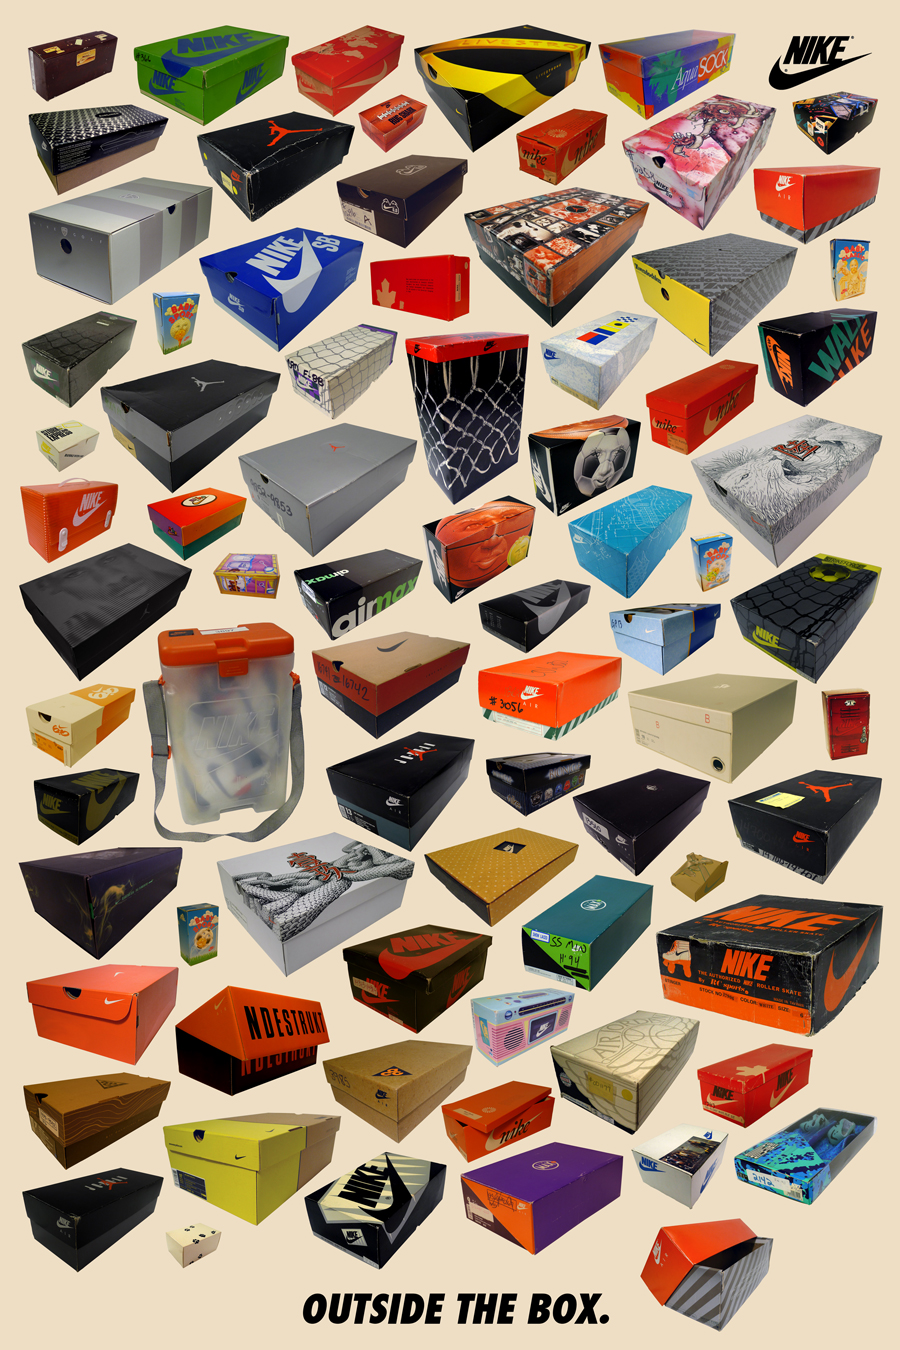 70 Photos Of Old Nike Sneaker Boxes